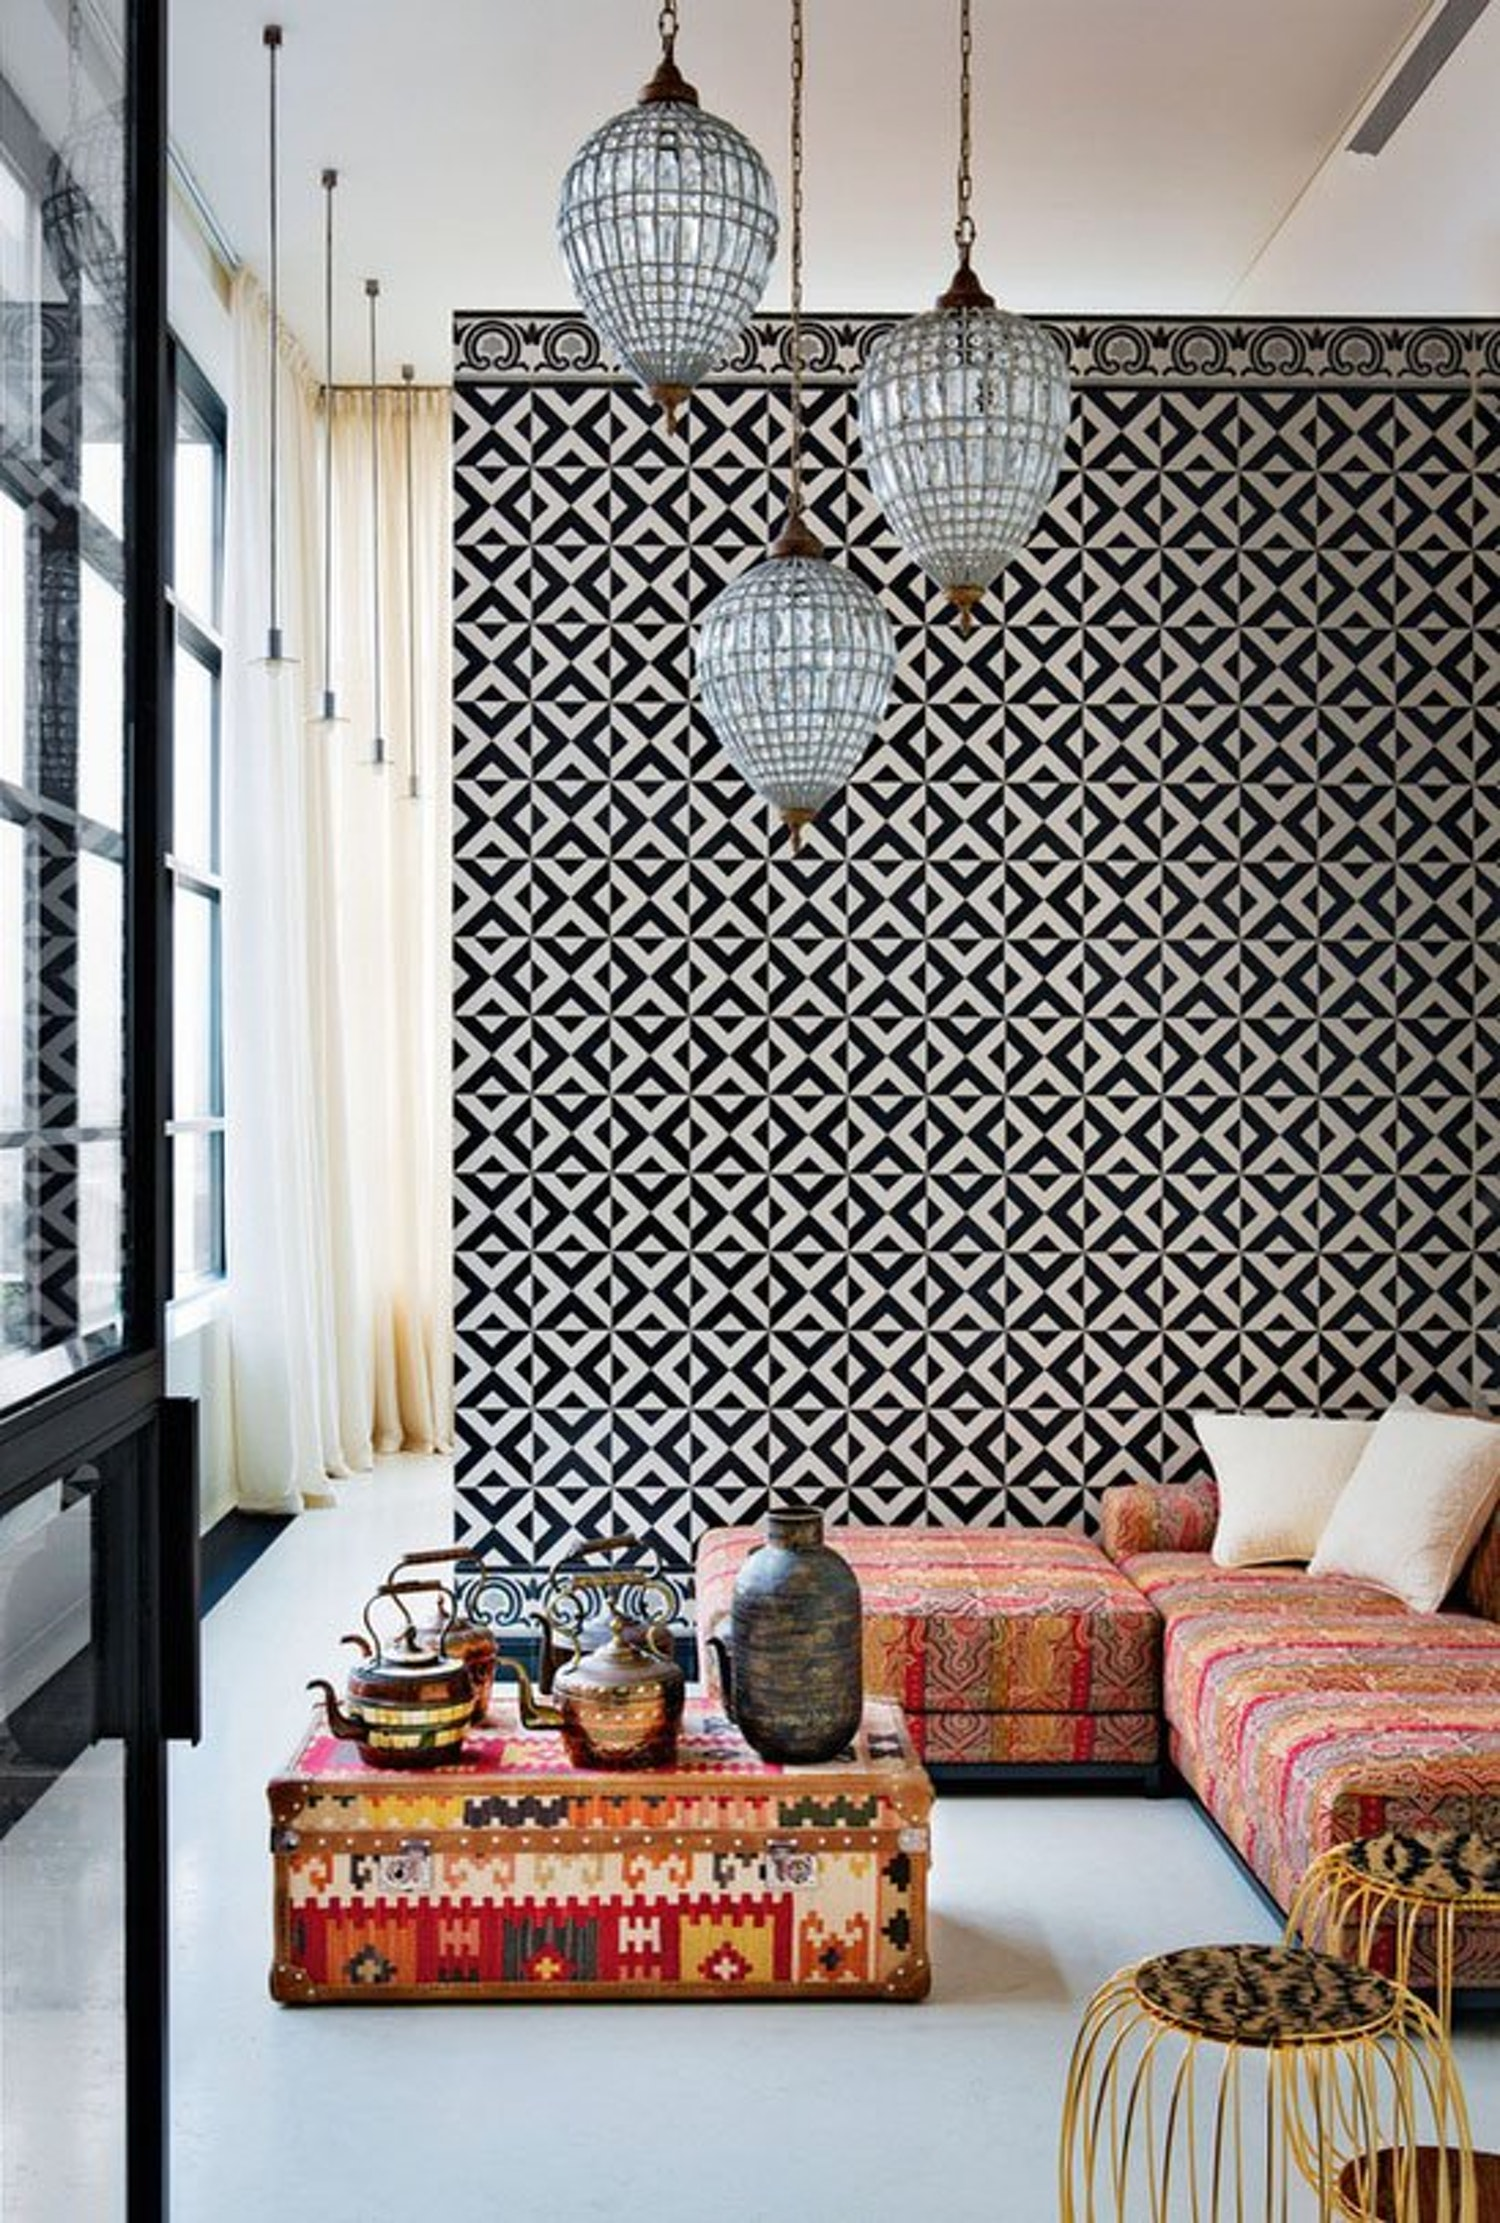 Moroccan Home Decor Ideas You Ll Want To Get For Your City Apartment